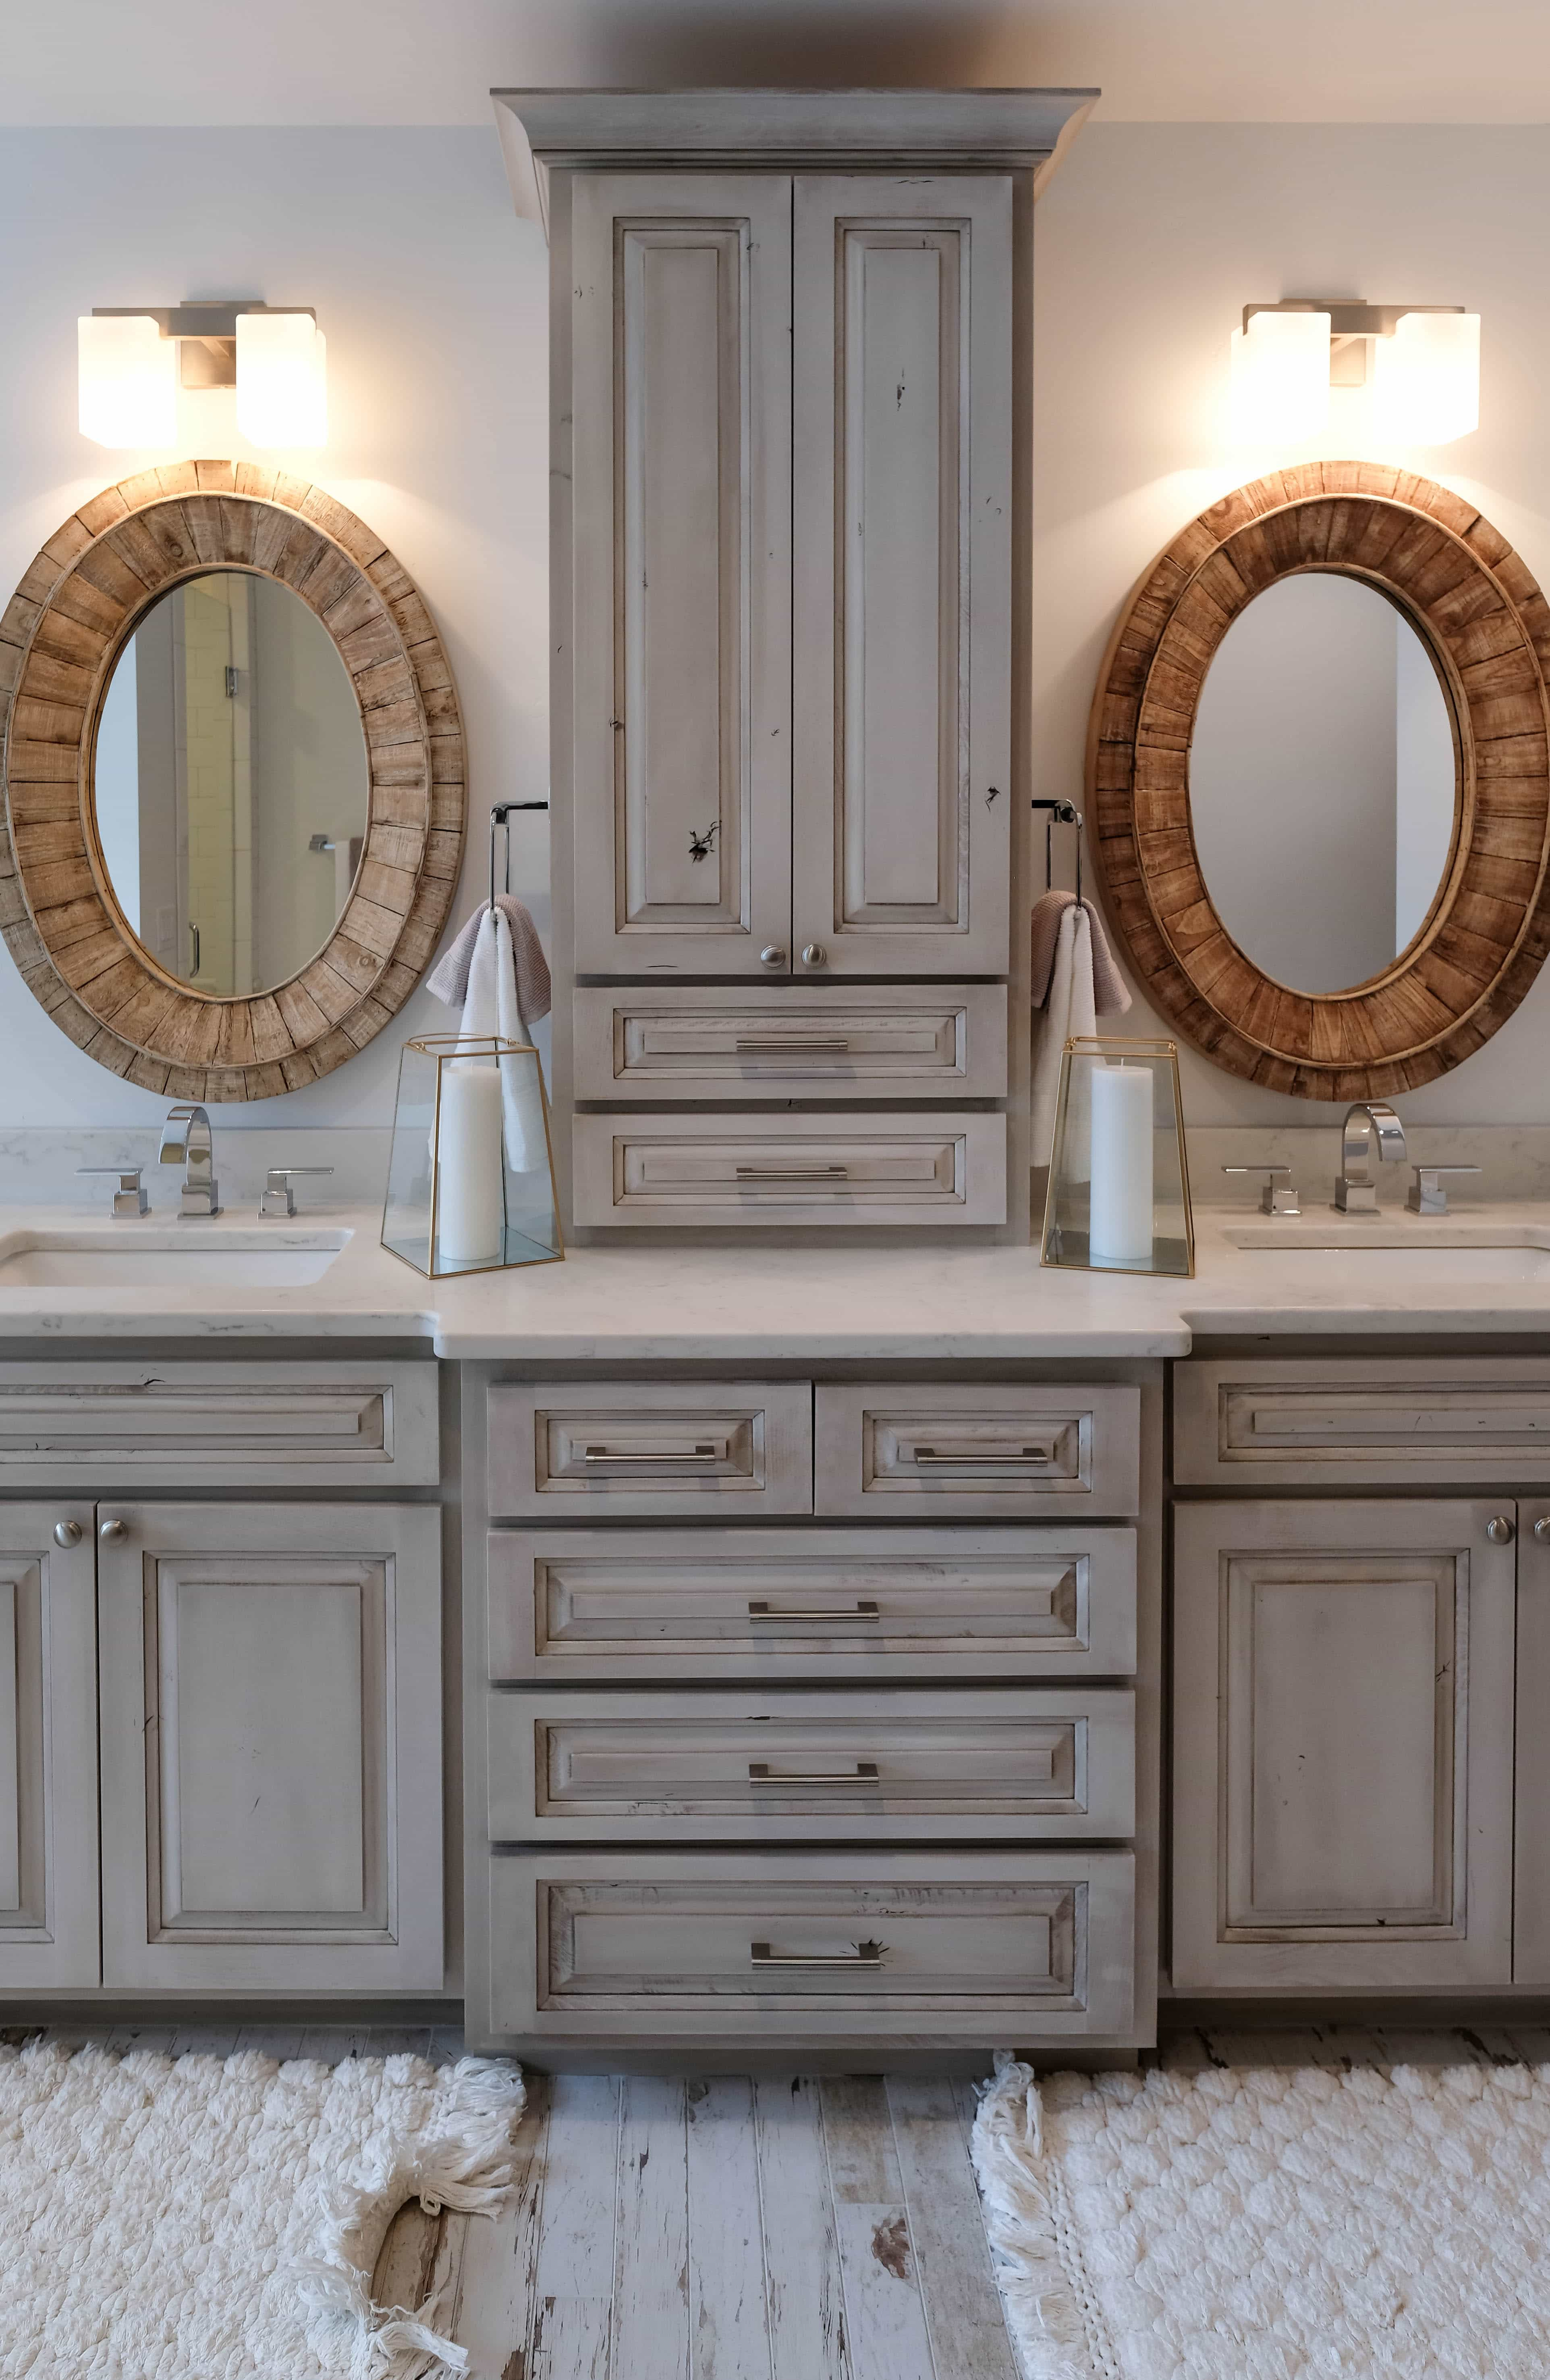 Parade of Homes master bathroom with modern rustic cabinets